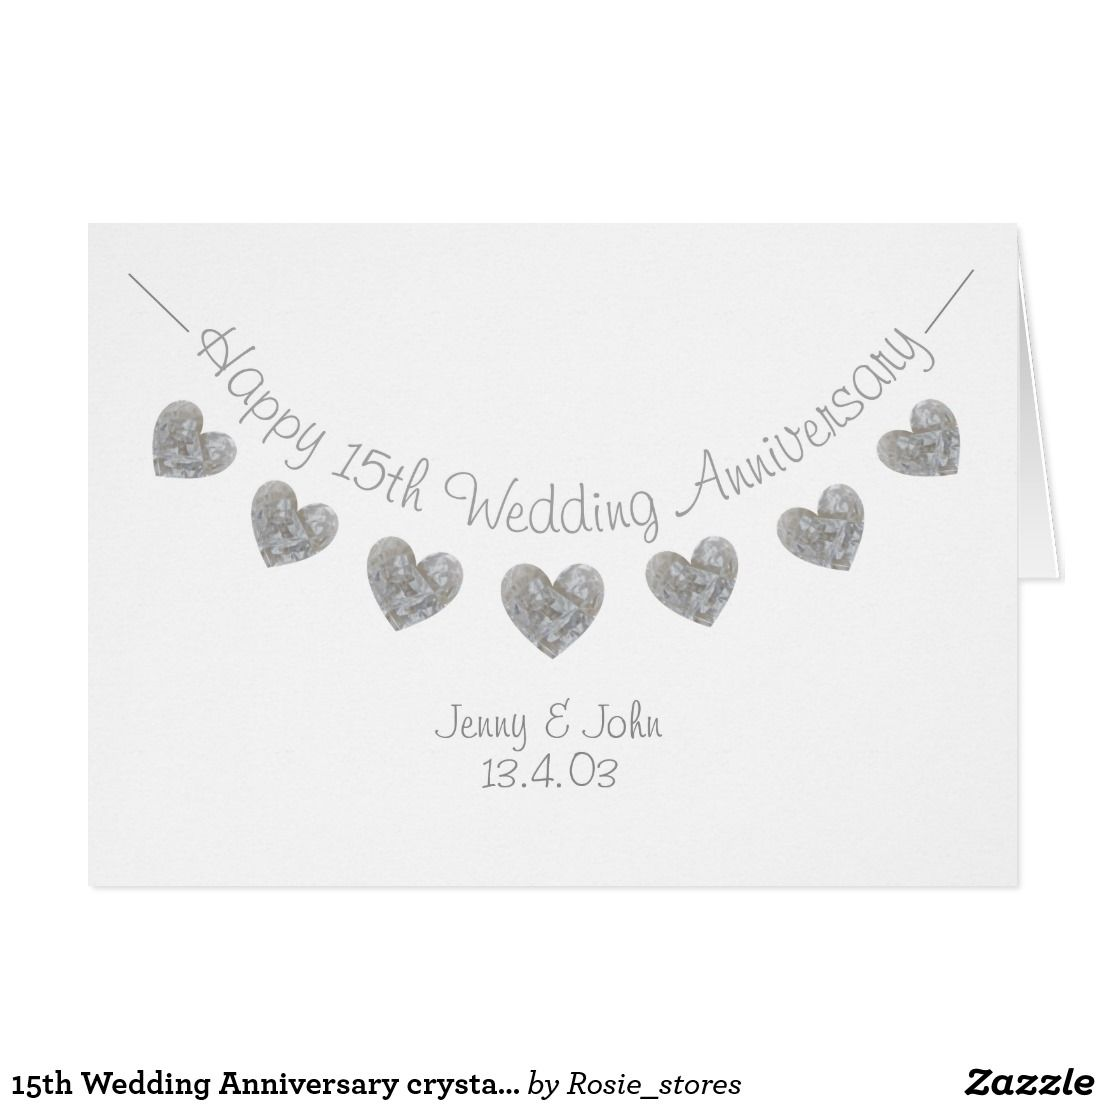 Crystal Gifts For 15th Wedding Anniversary: 15th Wedding Anniversary Crystal Hearts Card